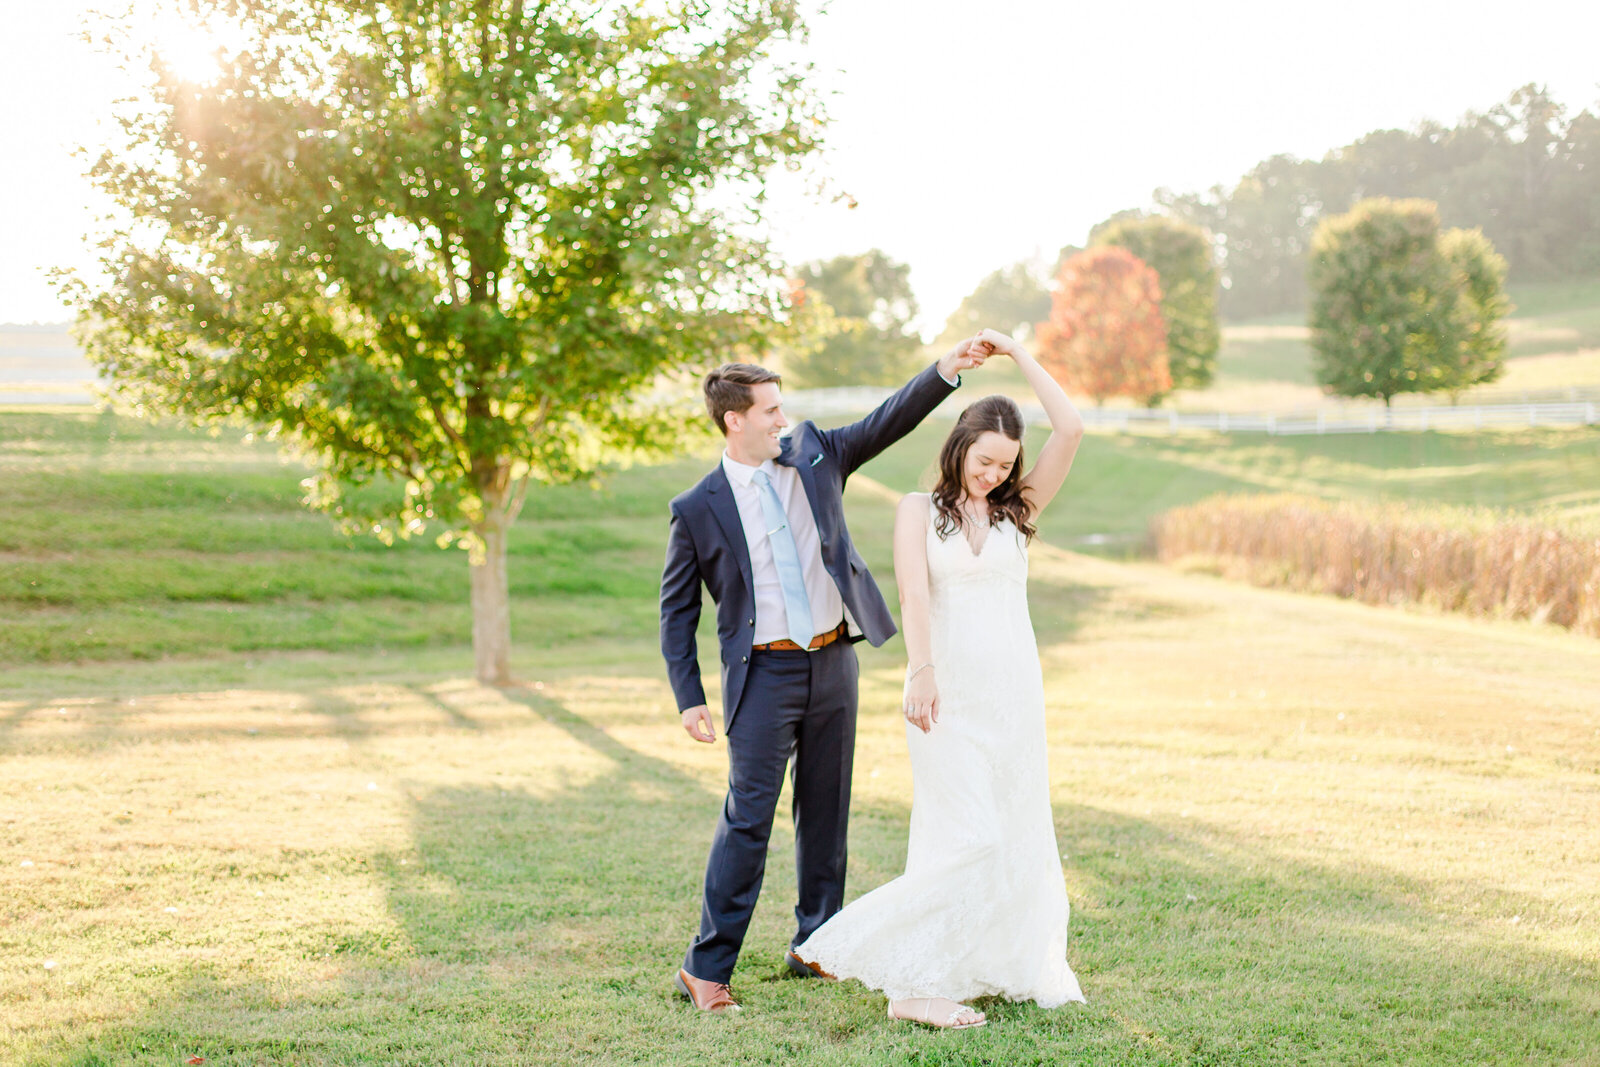 keswick-vineyard-wedding-charlottesville-virginia-venue-photos167